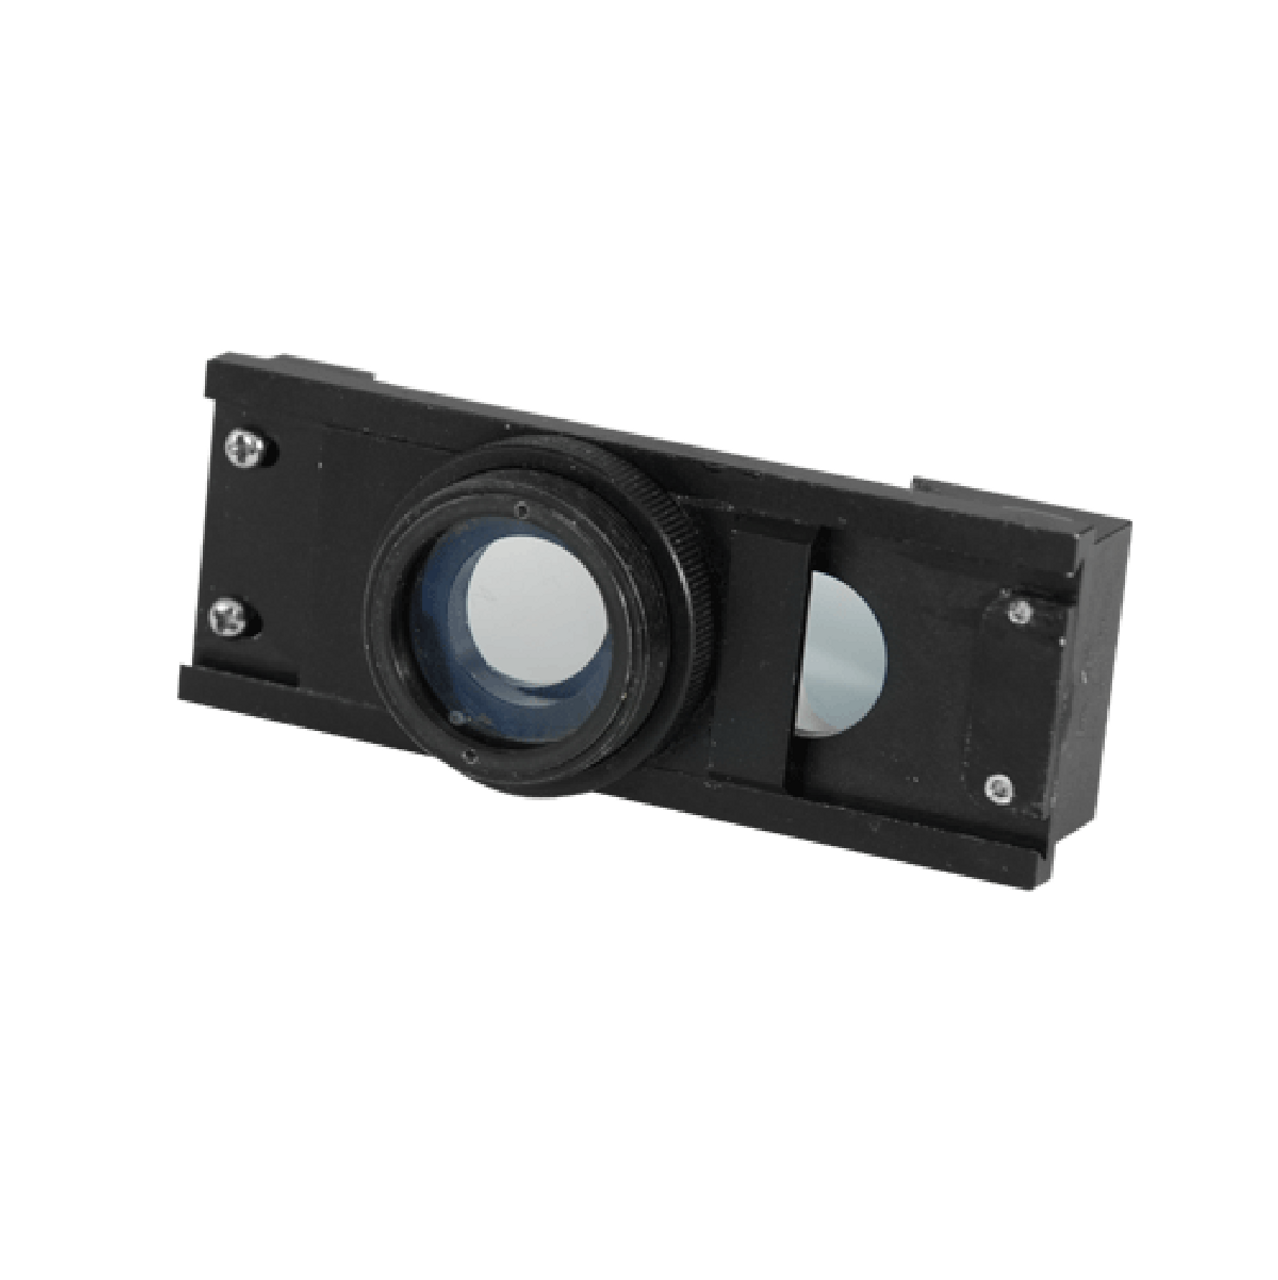 3D Rotary Observation Lens Attachment for Microscope Objective, 360 Degree  View, 35 Degree Angle Converter